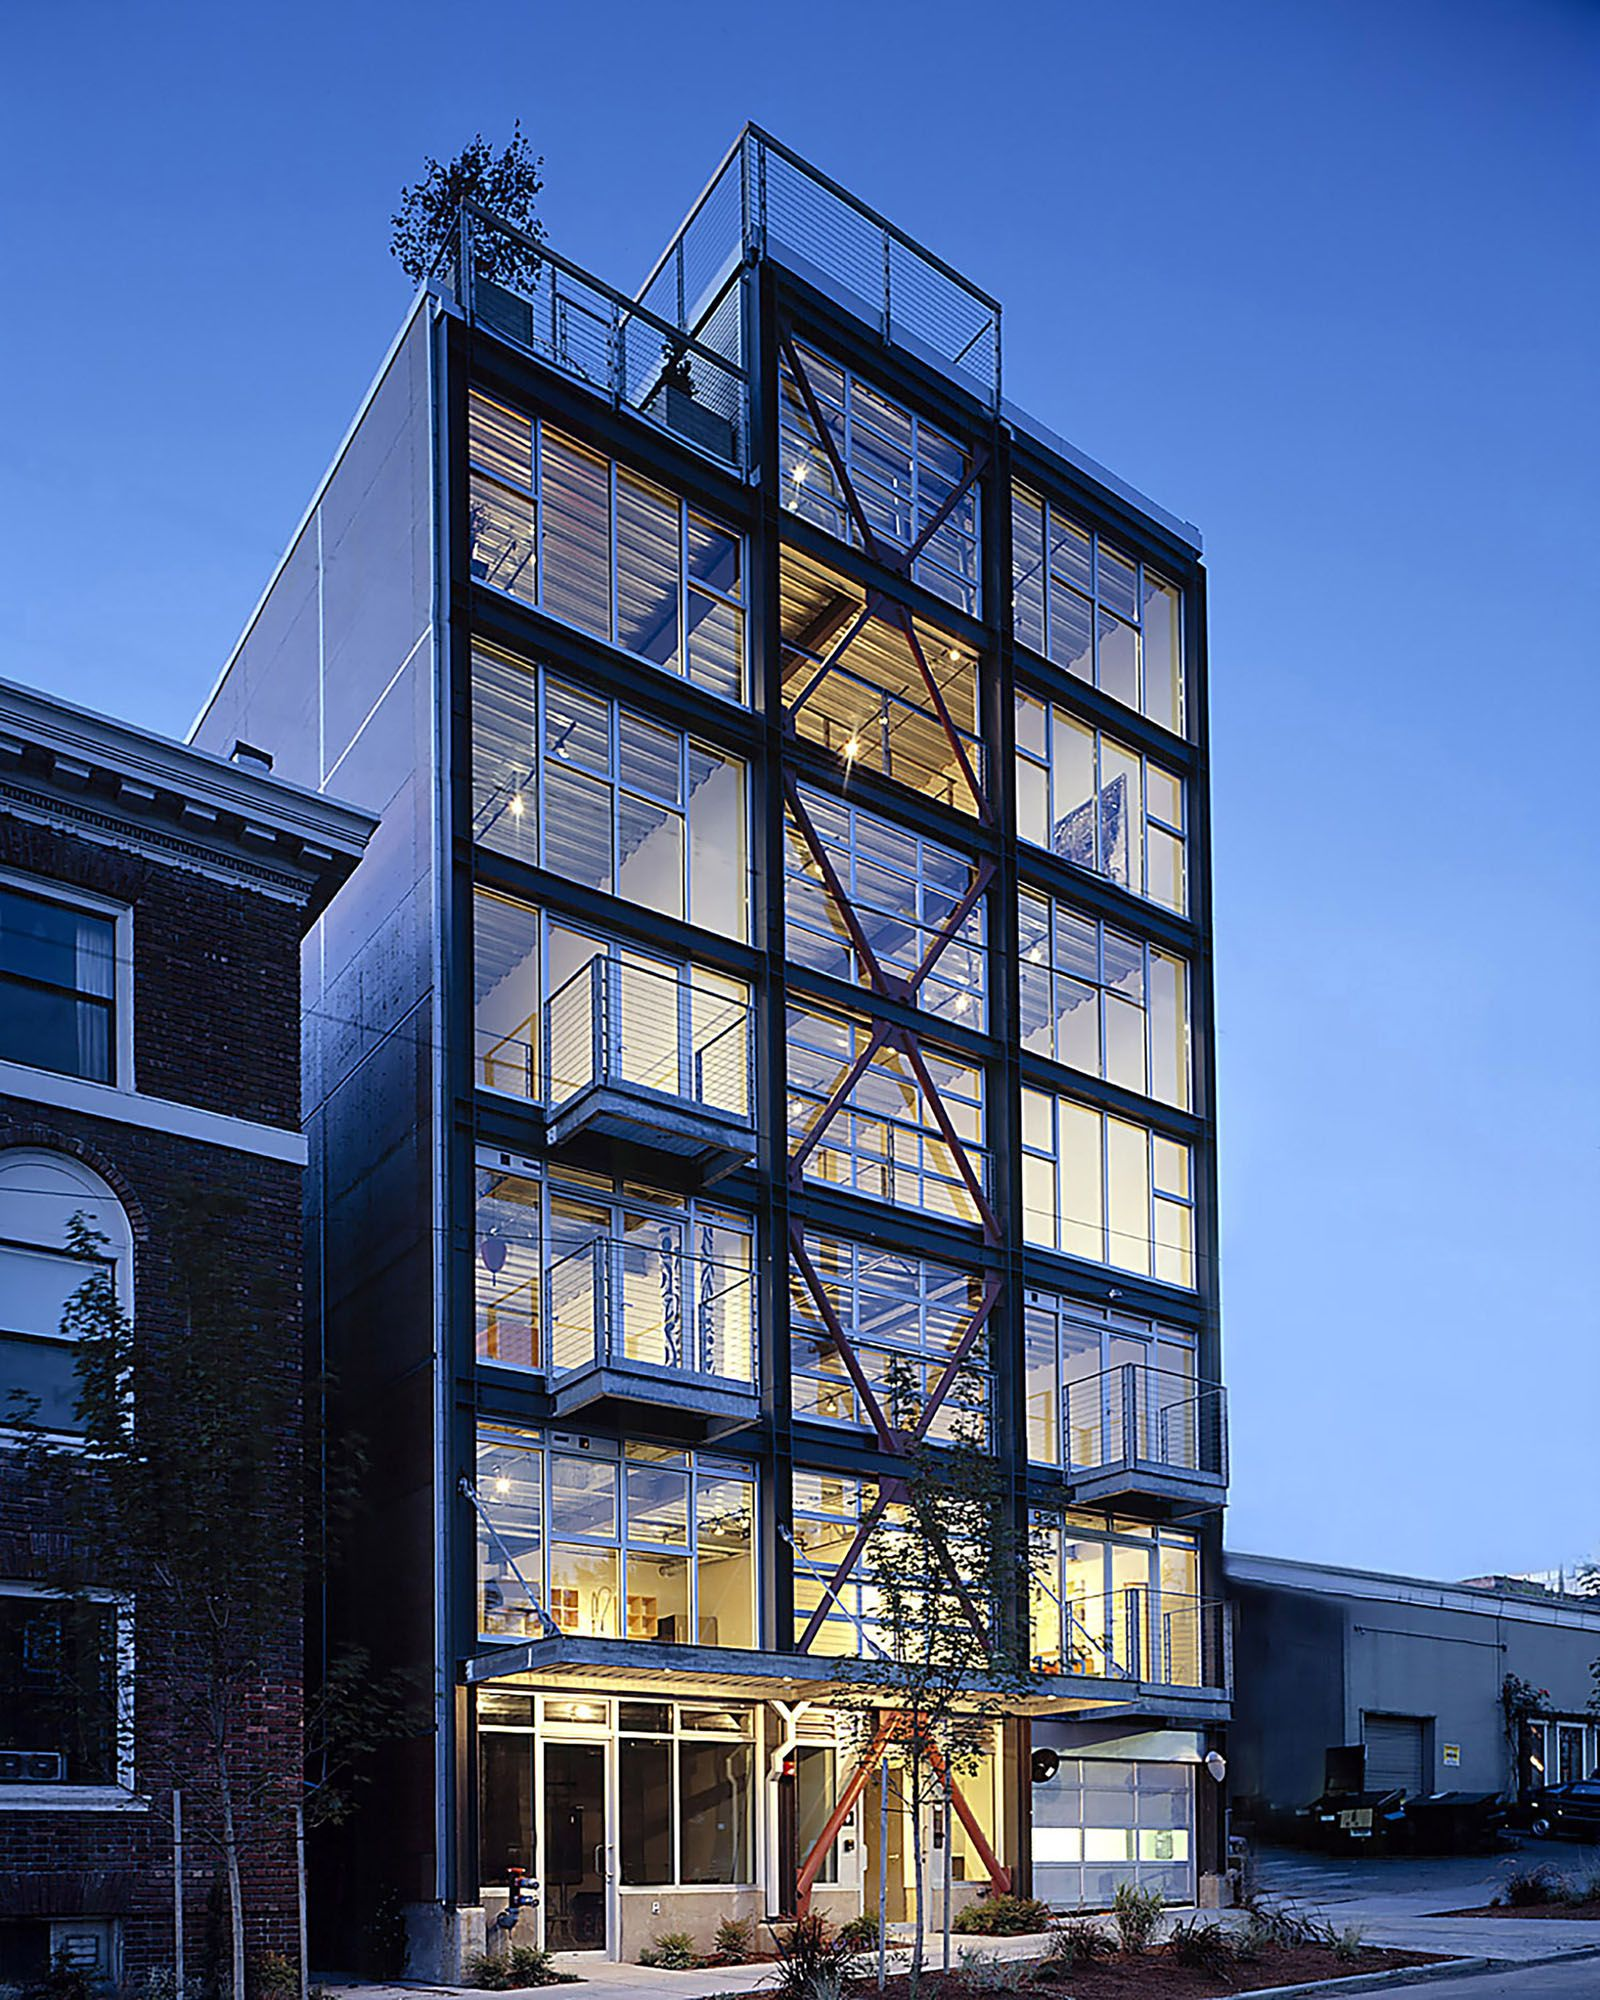 Modern Apartment Building capitol hill seattle loft apartment building | cool architectural